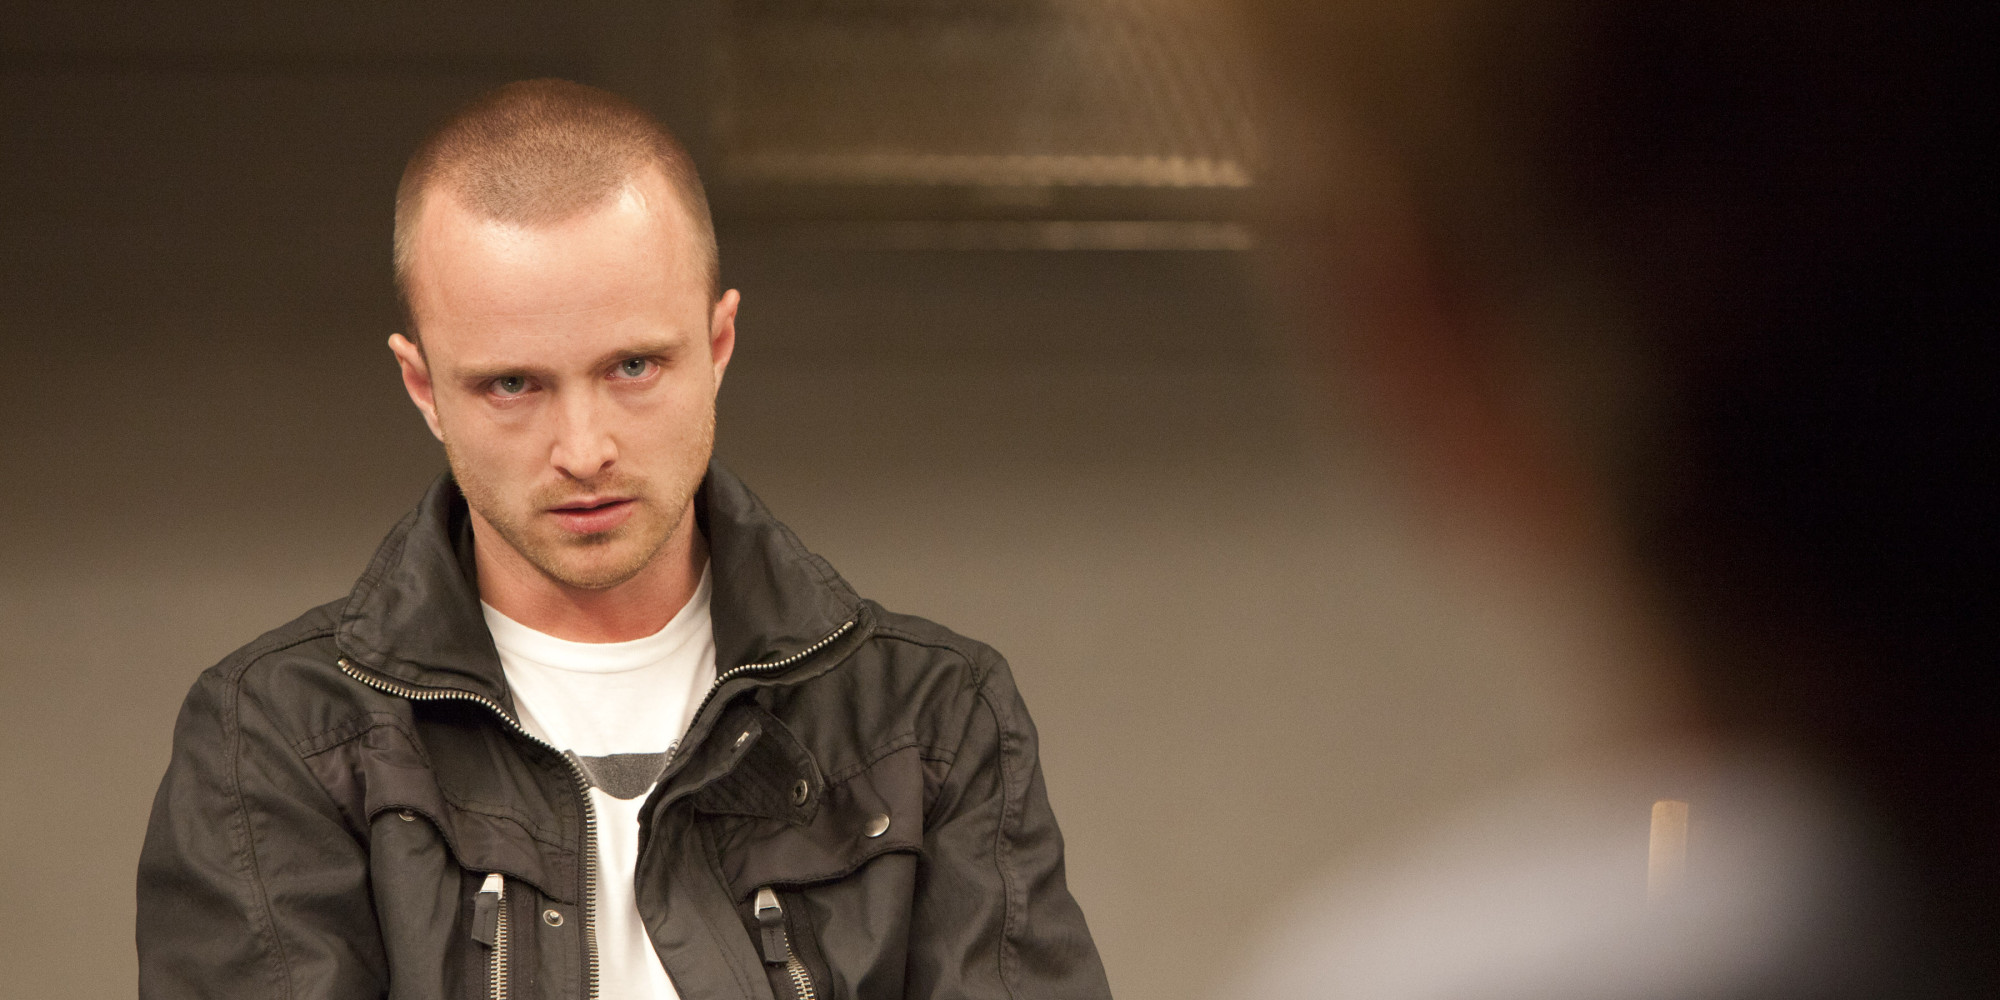 """In this image released by AMC, Aaron Paul portrays Jesse Pinkman in a scene from """"Breaking Bad."""" (AP Photo/AMC, Ursula Coyote)"""